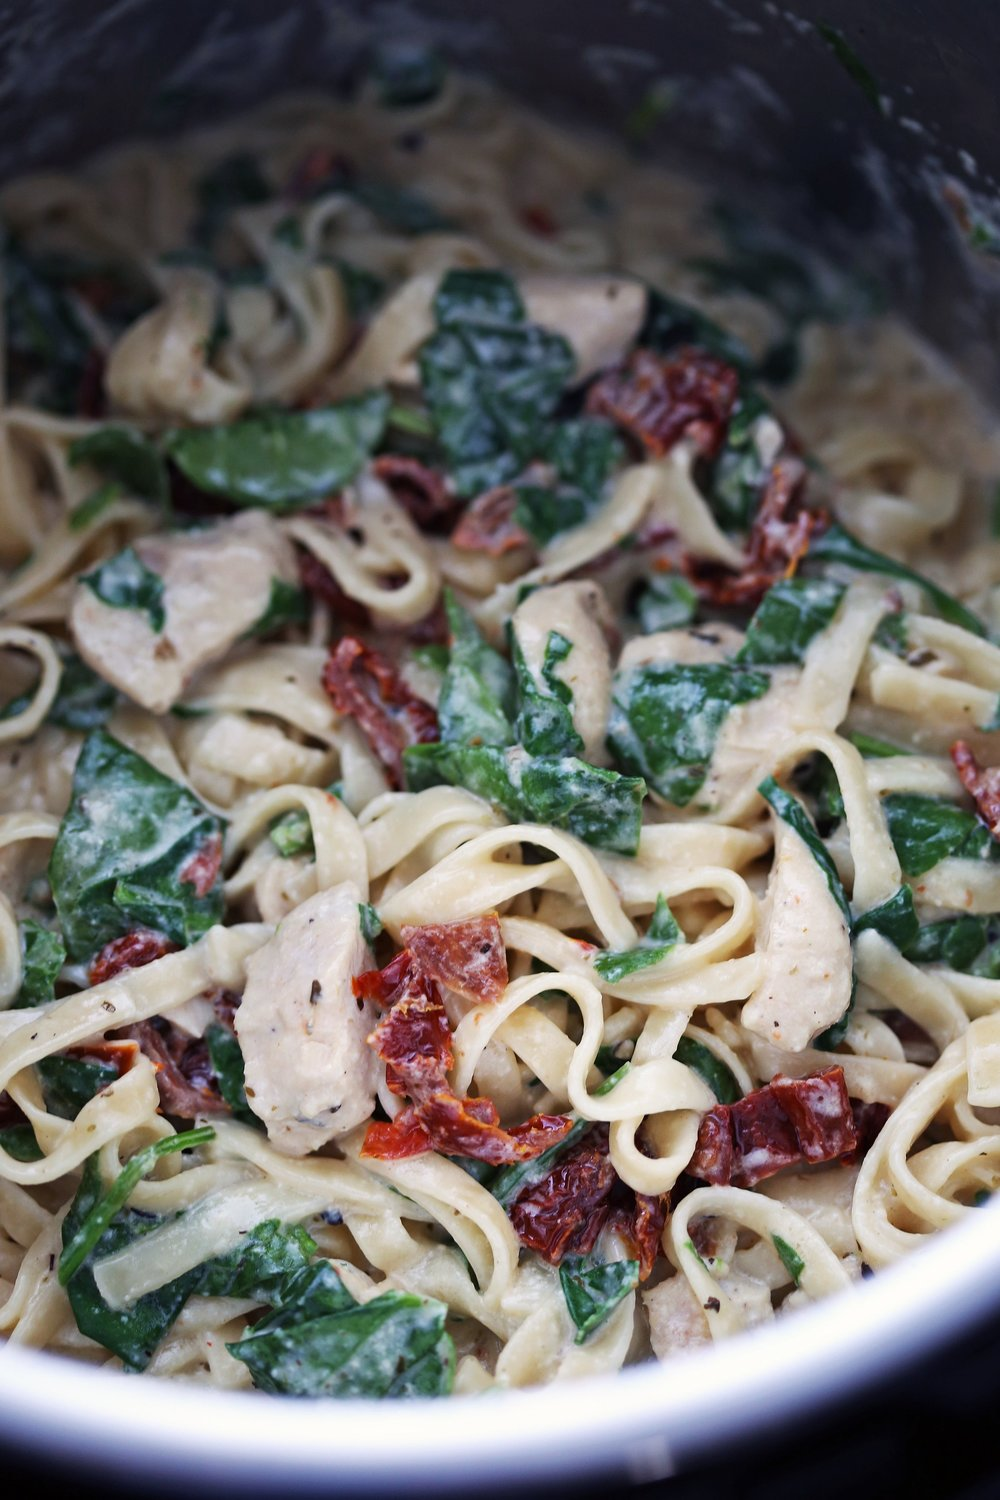 Creamy fettuccine pasta tossed in a creamy sauce with chicken, sun-dried tomatoes, and baby spinach in the Instant Pot.